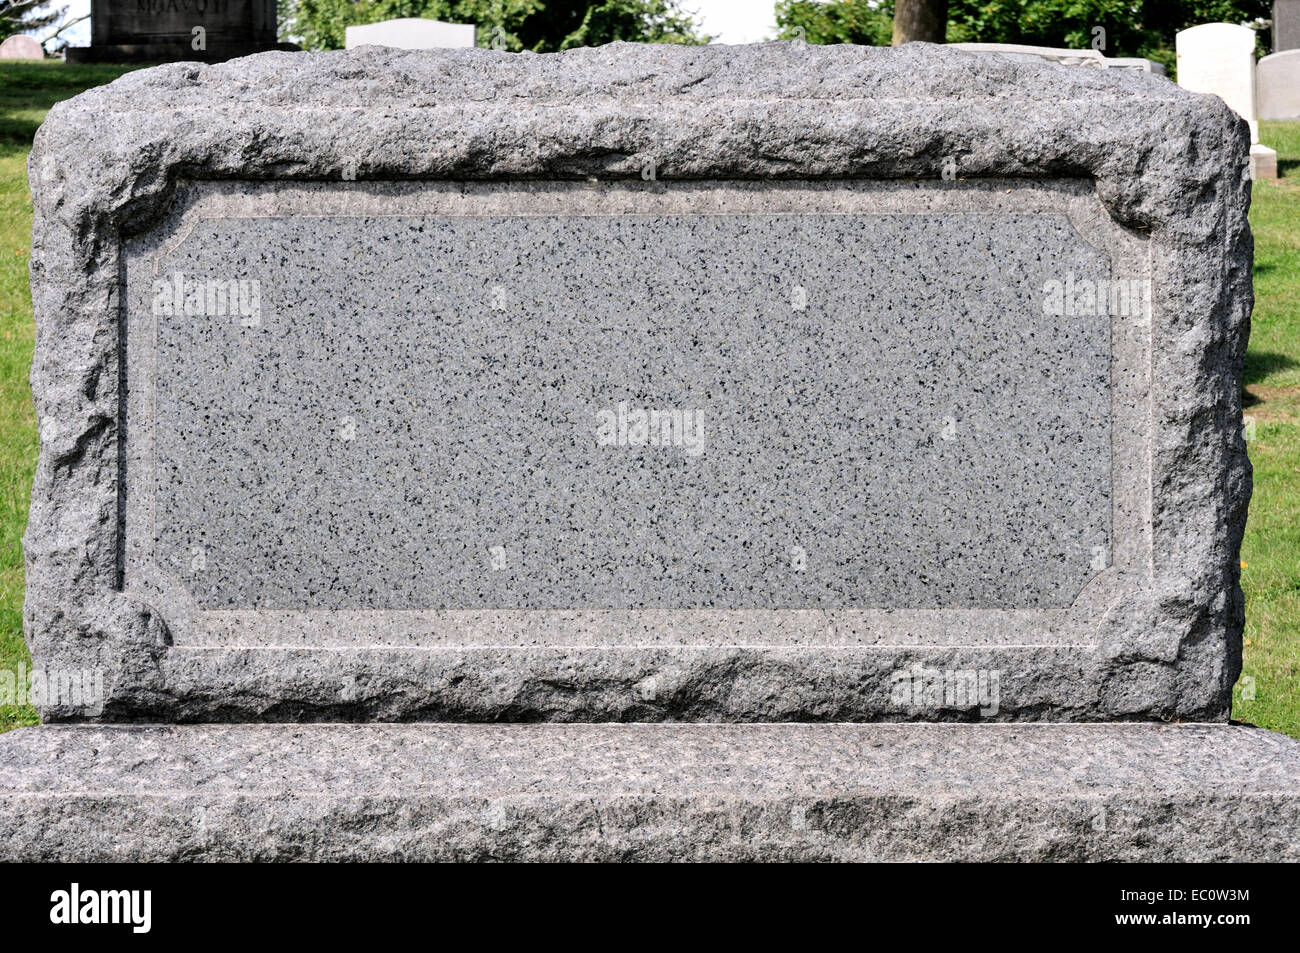 A blank tombstone in a cemetery setting Stock Photo ...